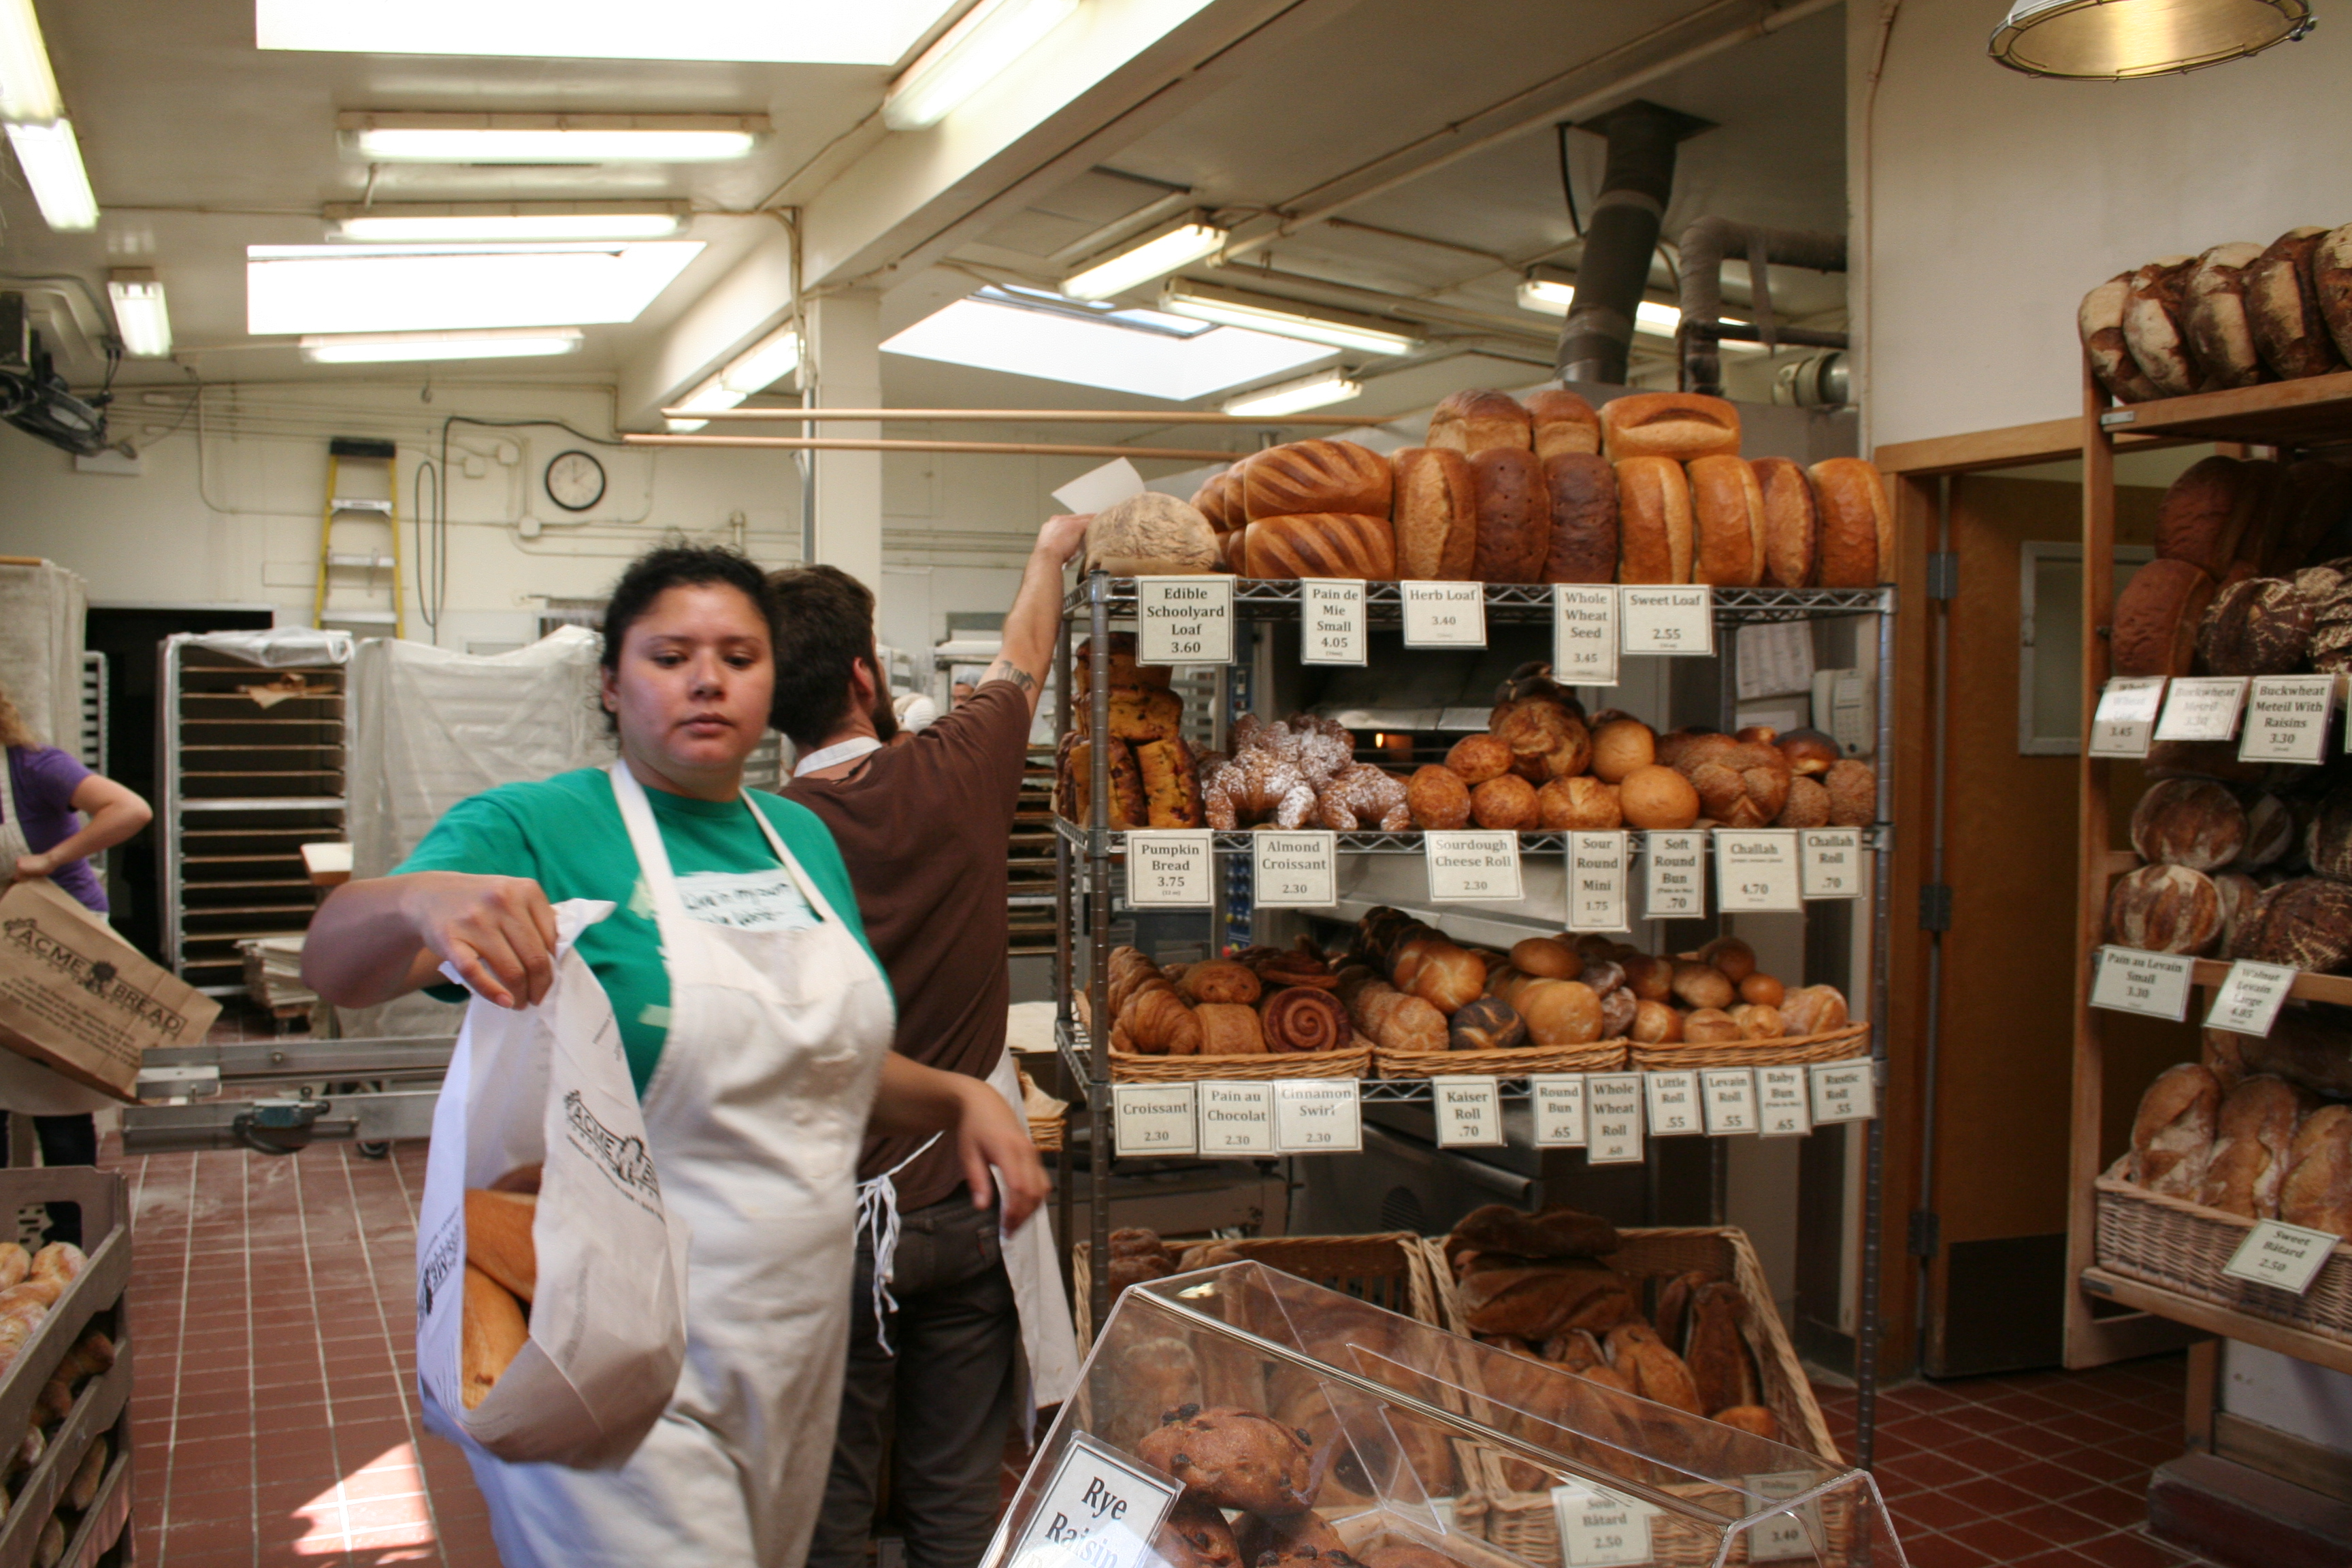 Acne Bread, which is housed in the same complex at Kermit Lynch's wine shop, was bustling Saturday. Photo: Tracey Taylor